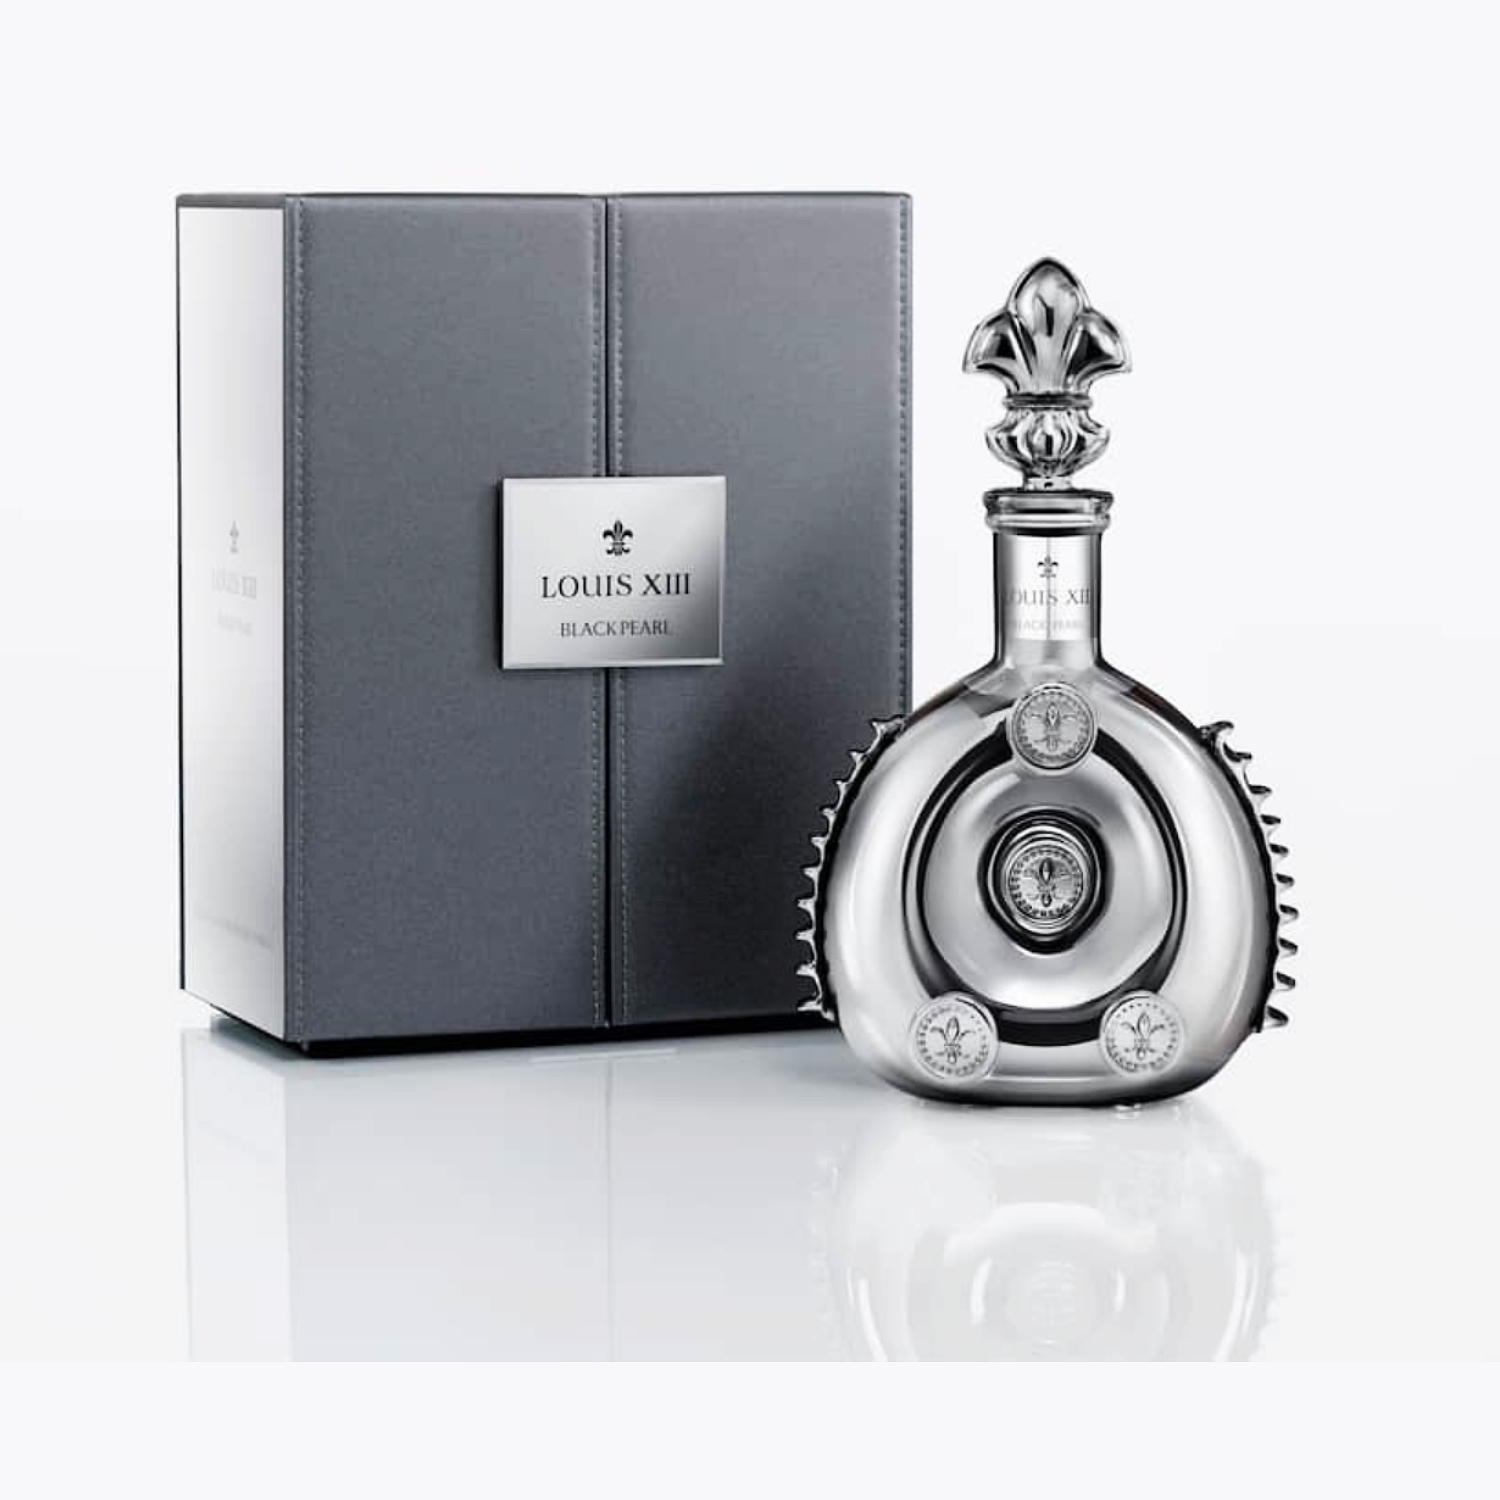 Louis XIII Silver Blackpearl